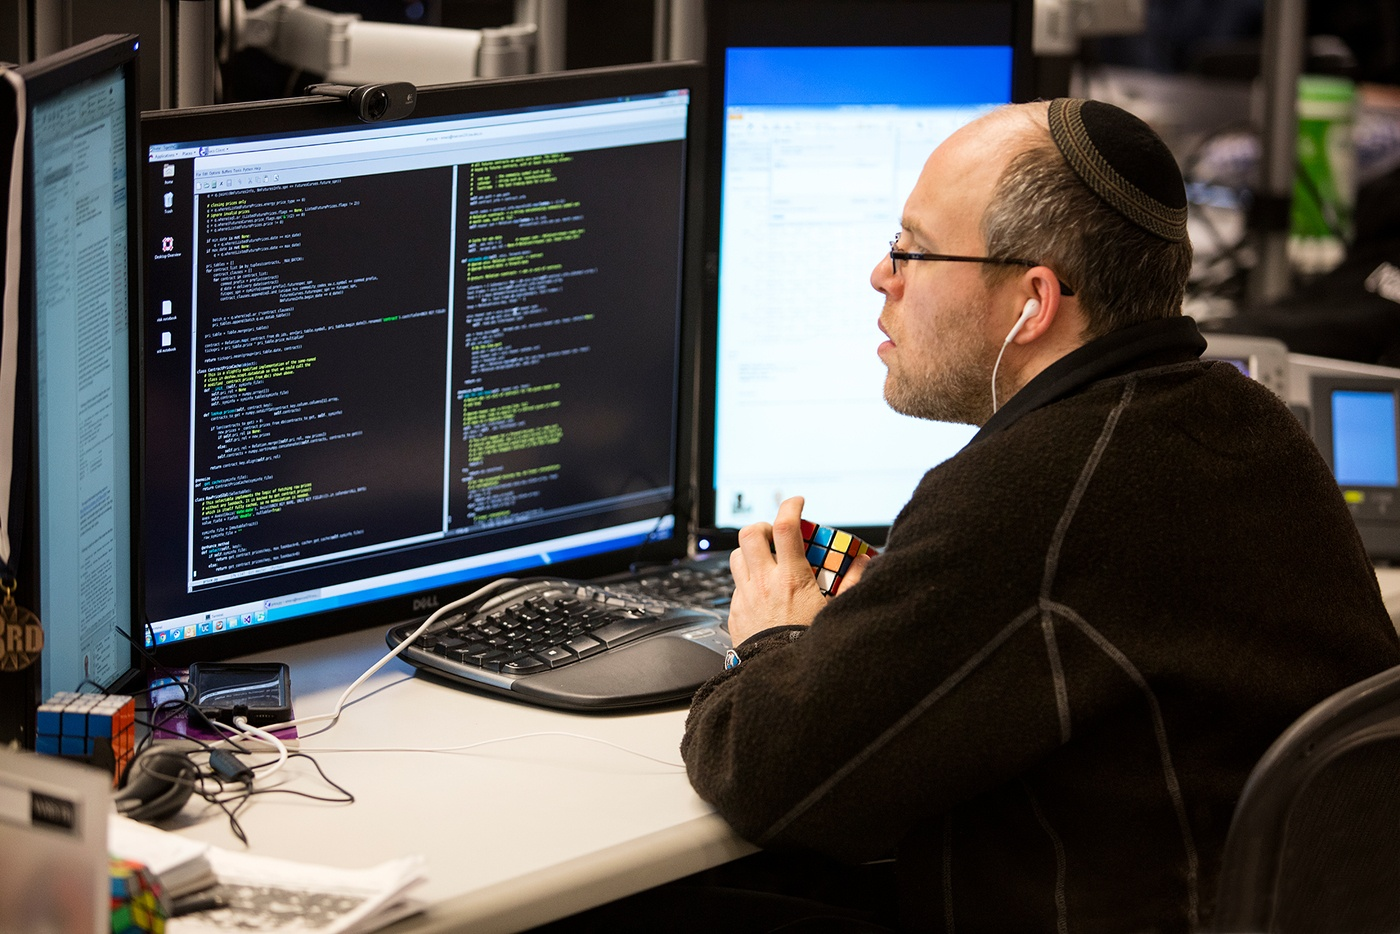 Man wearing kippah and headphones looks at code at his workstation while playing with Rubick's Cubes.